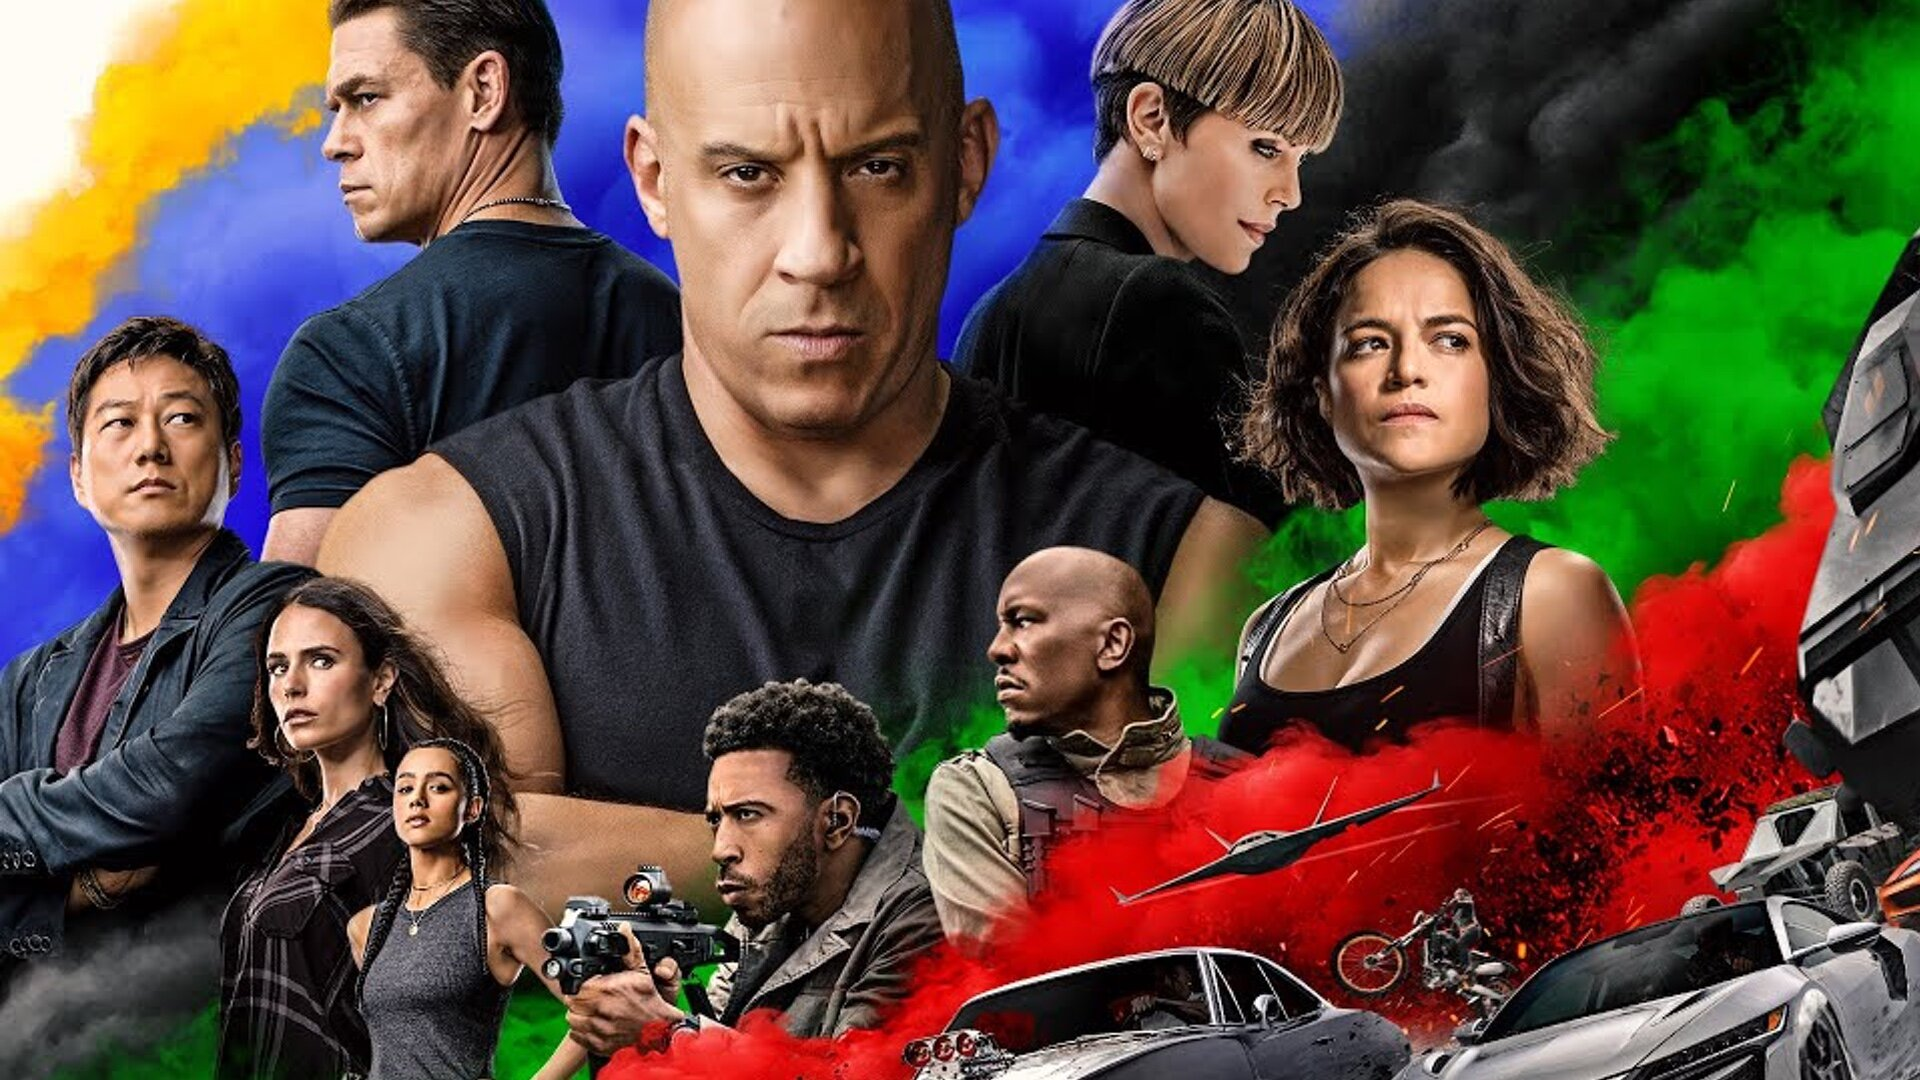 An F9 promo image, with Vin Diesel and the rest of the cast against a background of brightly colored smoke